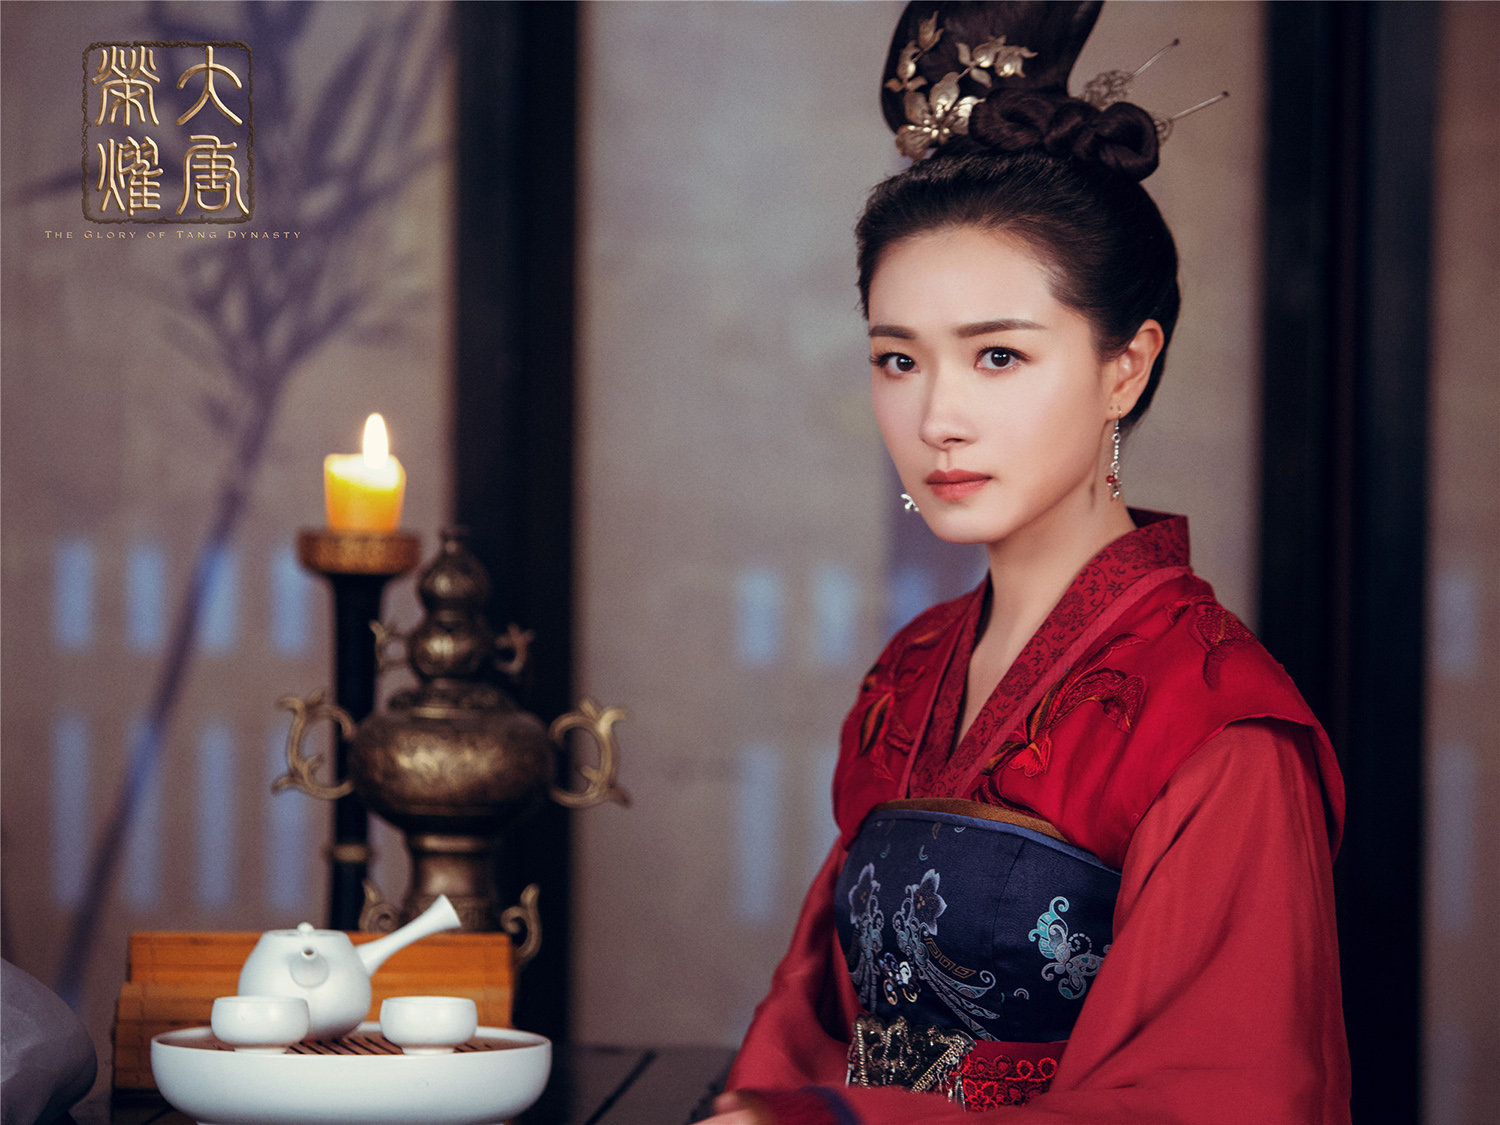 Wan Qian in Chinese drama The Glory of Tang Dynasty